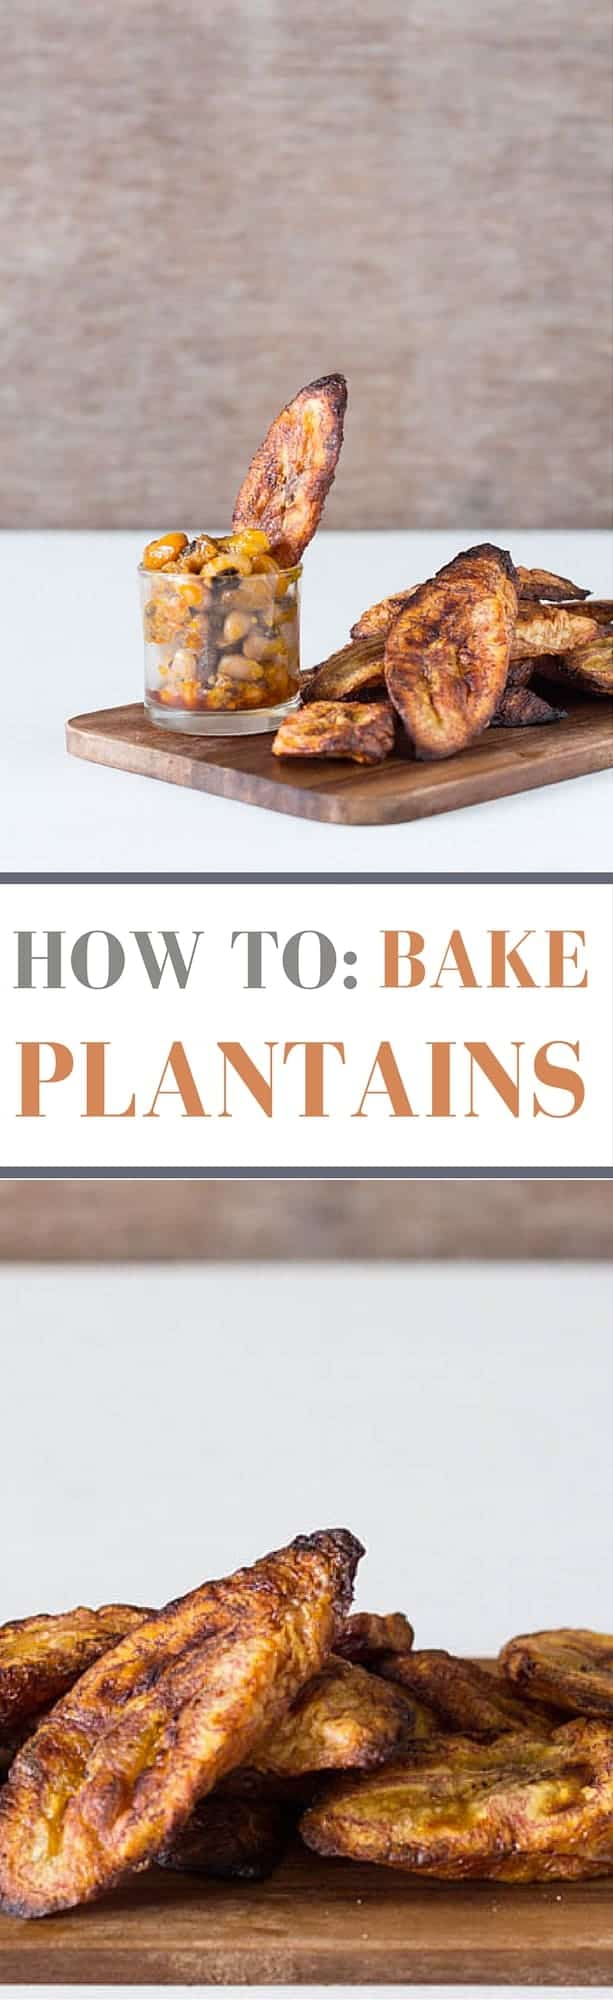 How To- Bake Plantains